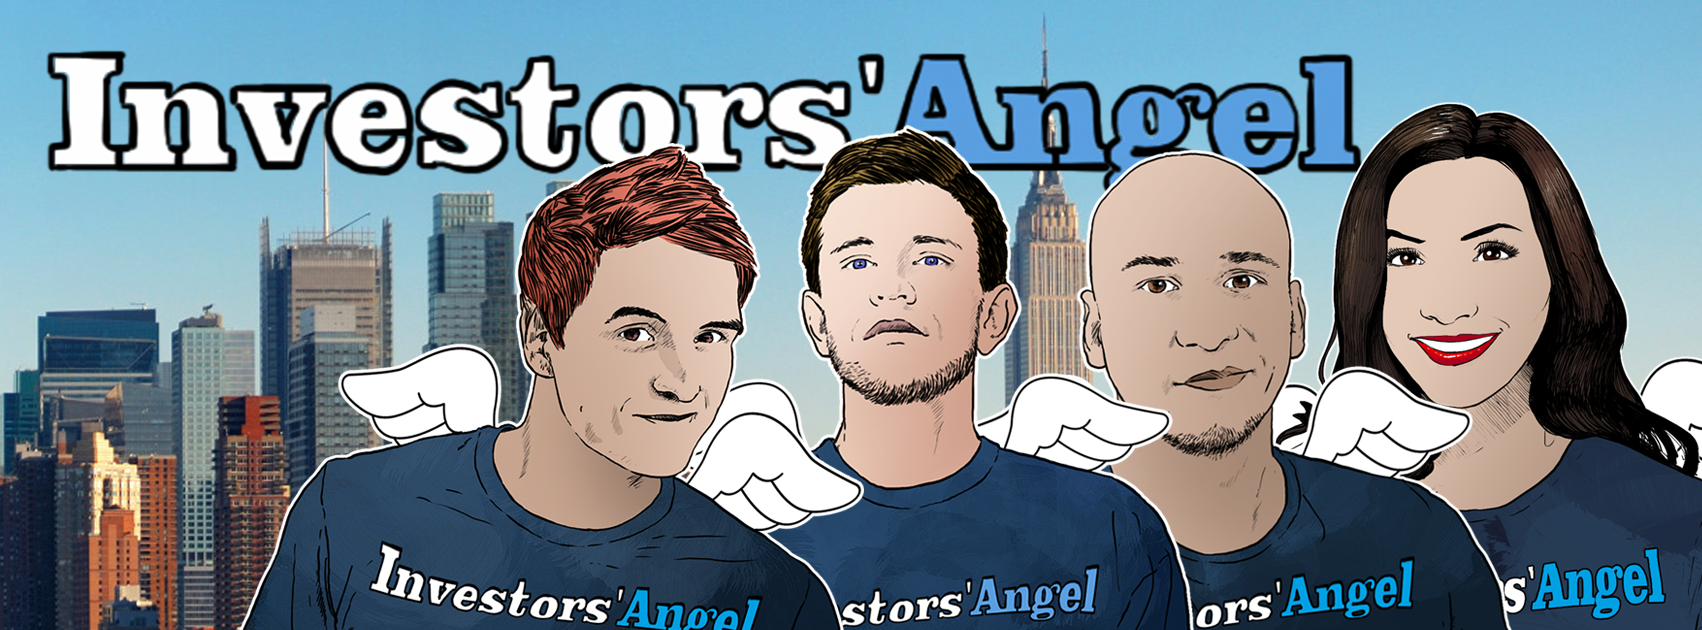 Investors'Angel Team